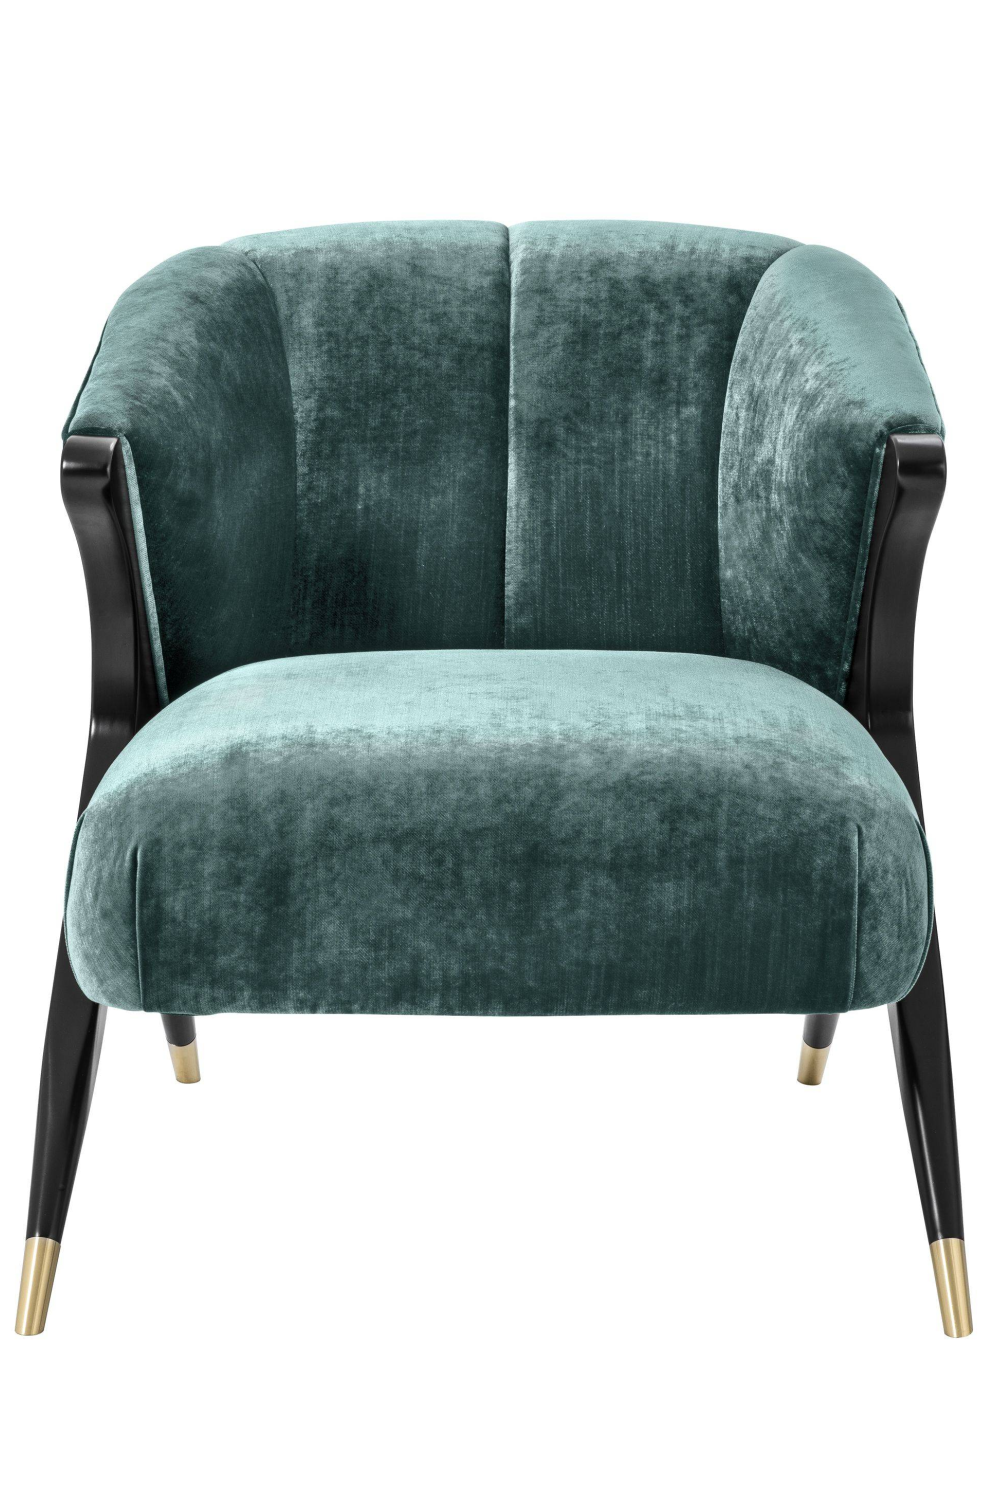 Green Upholstered Barrel Chair | Eichholtz Pavone | Woodfurniture.com